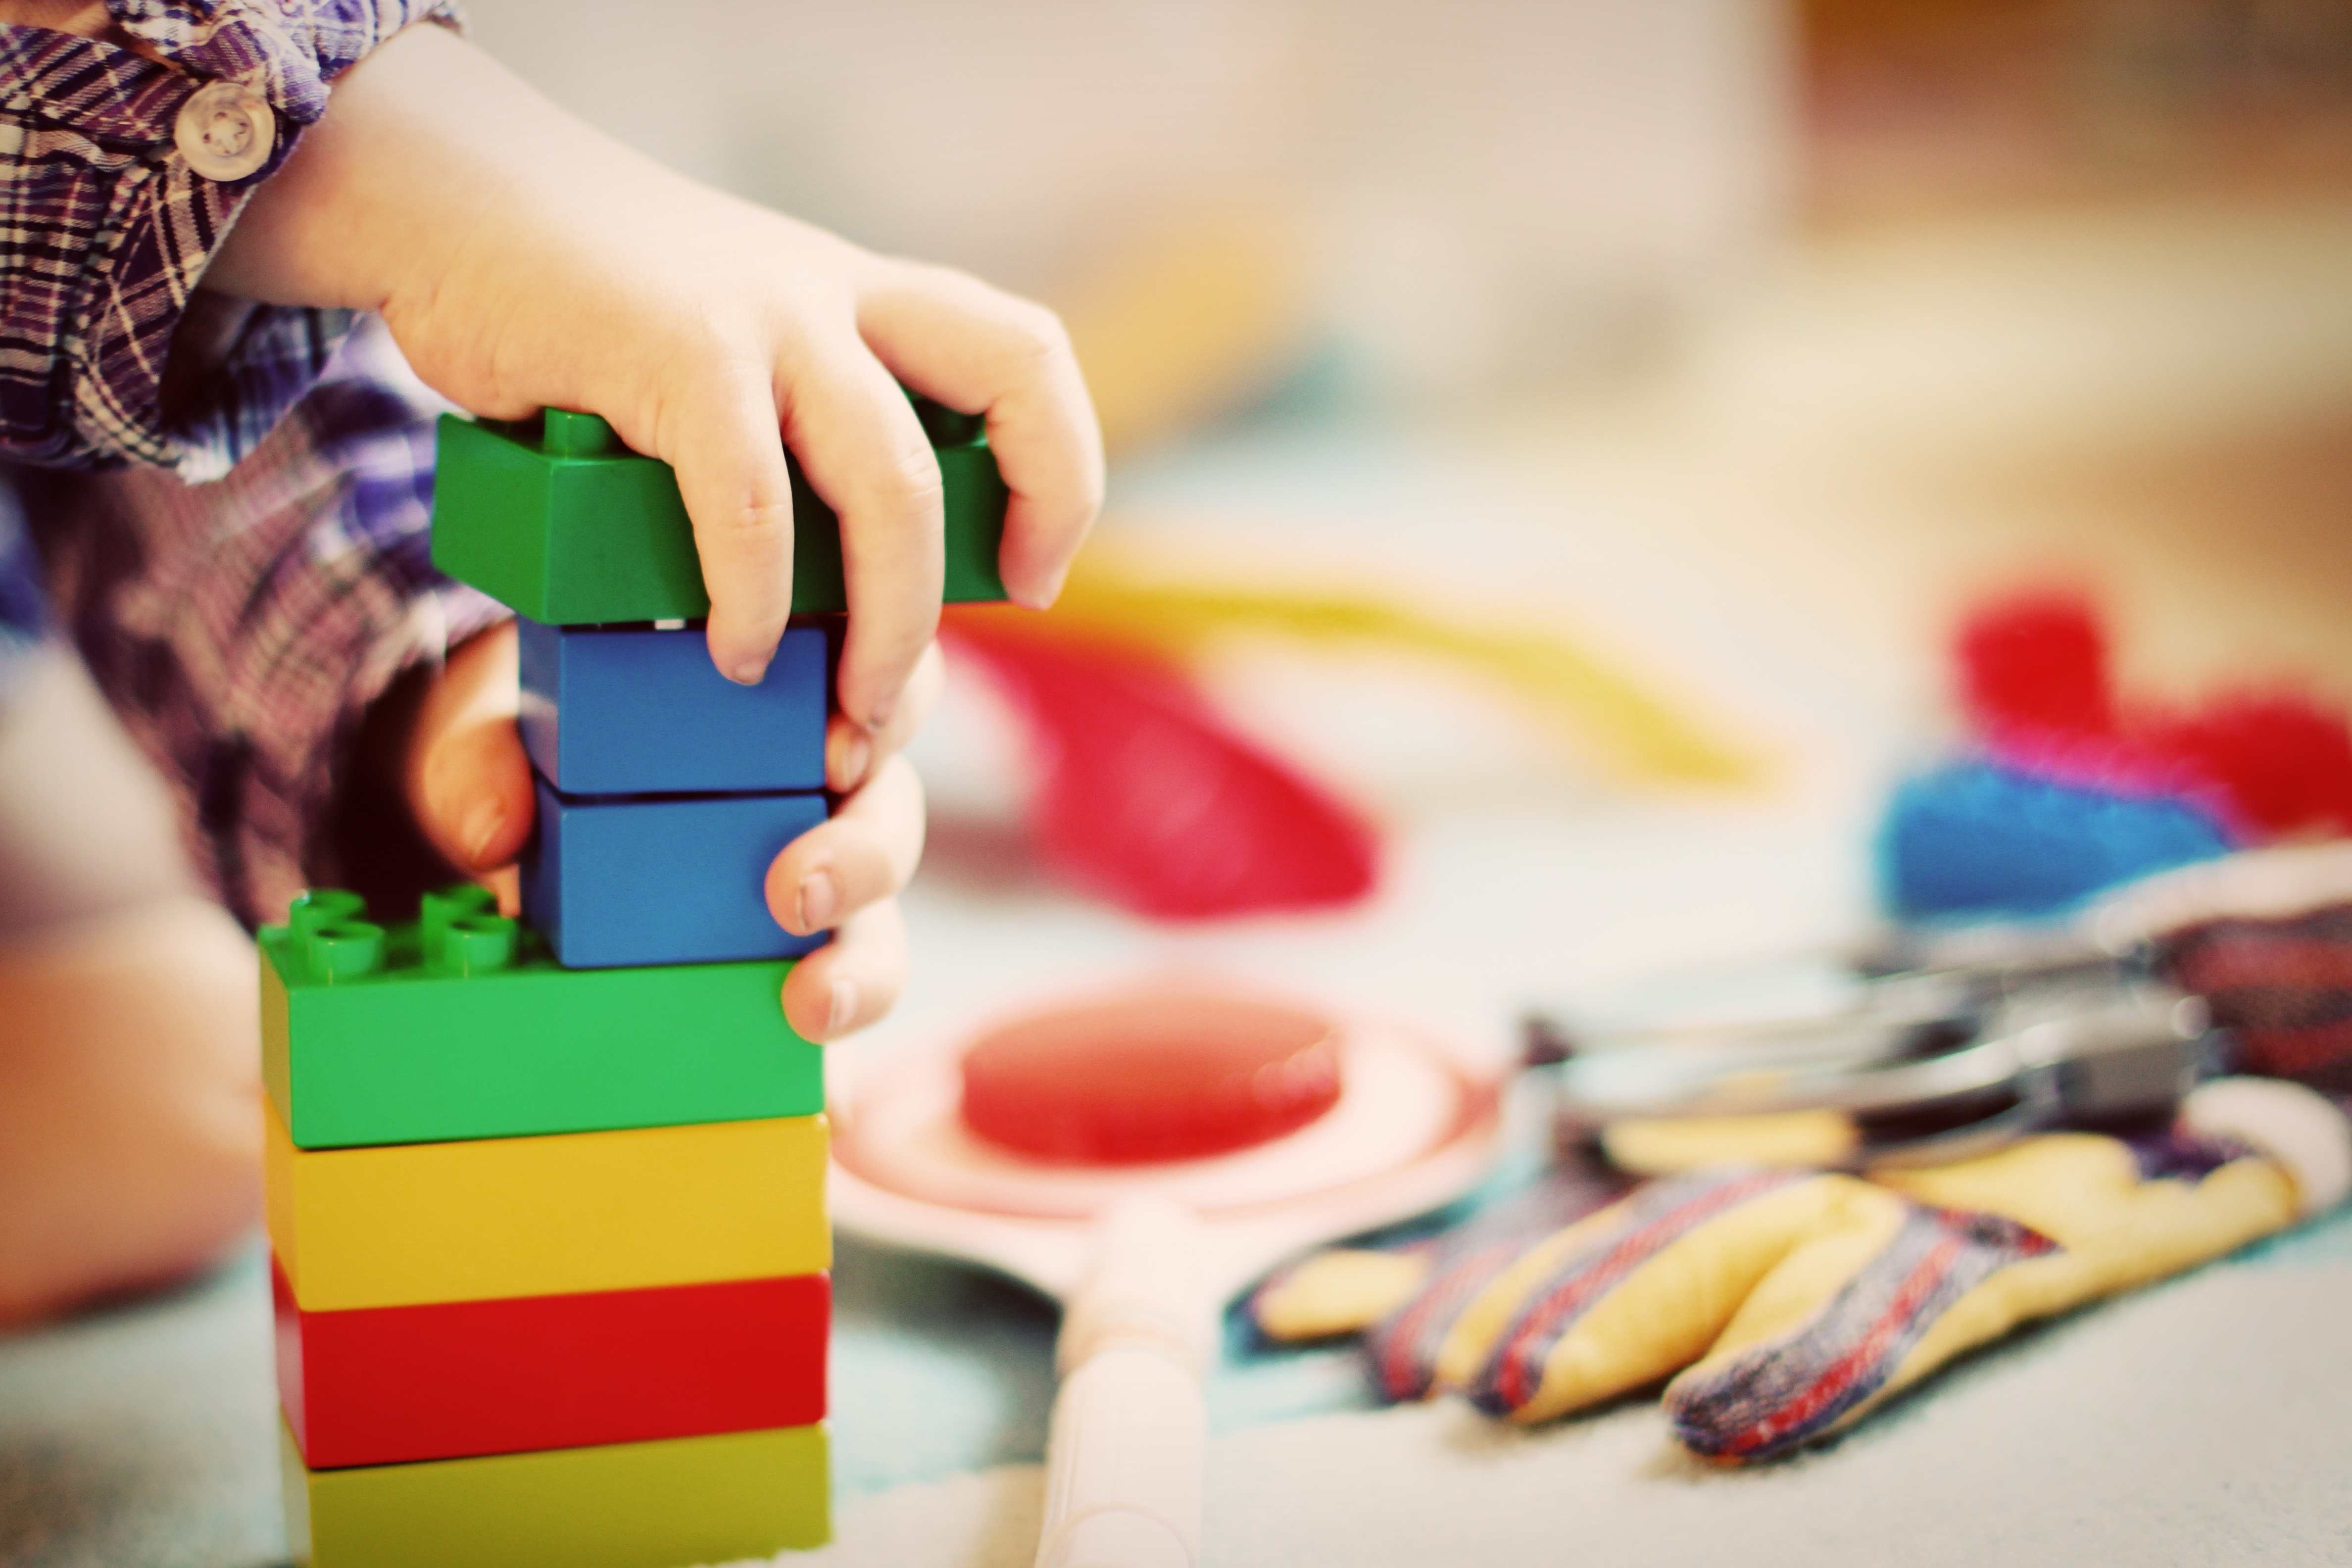 A toddler building a tower out of colorful blocks